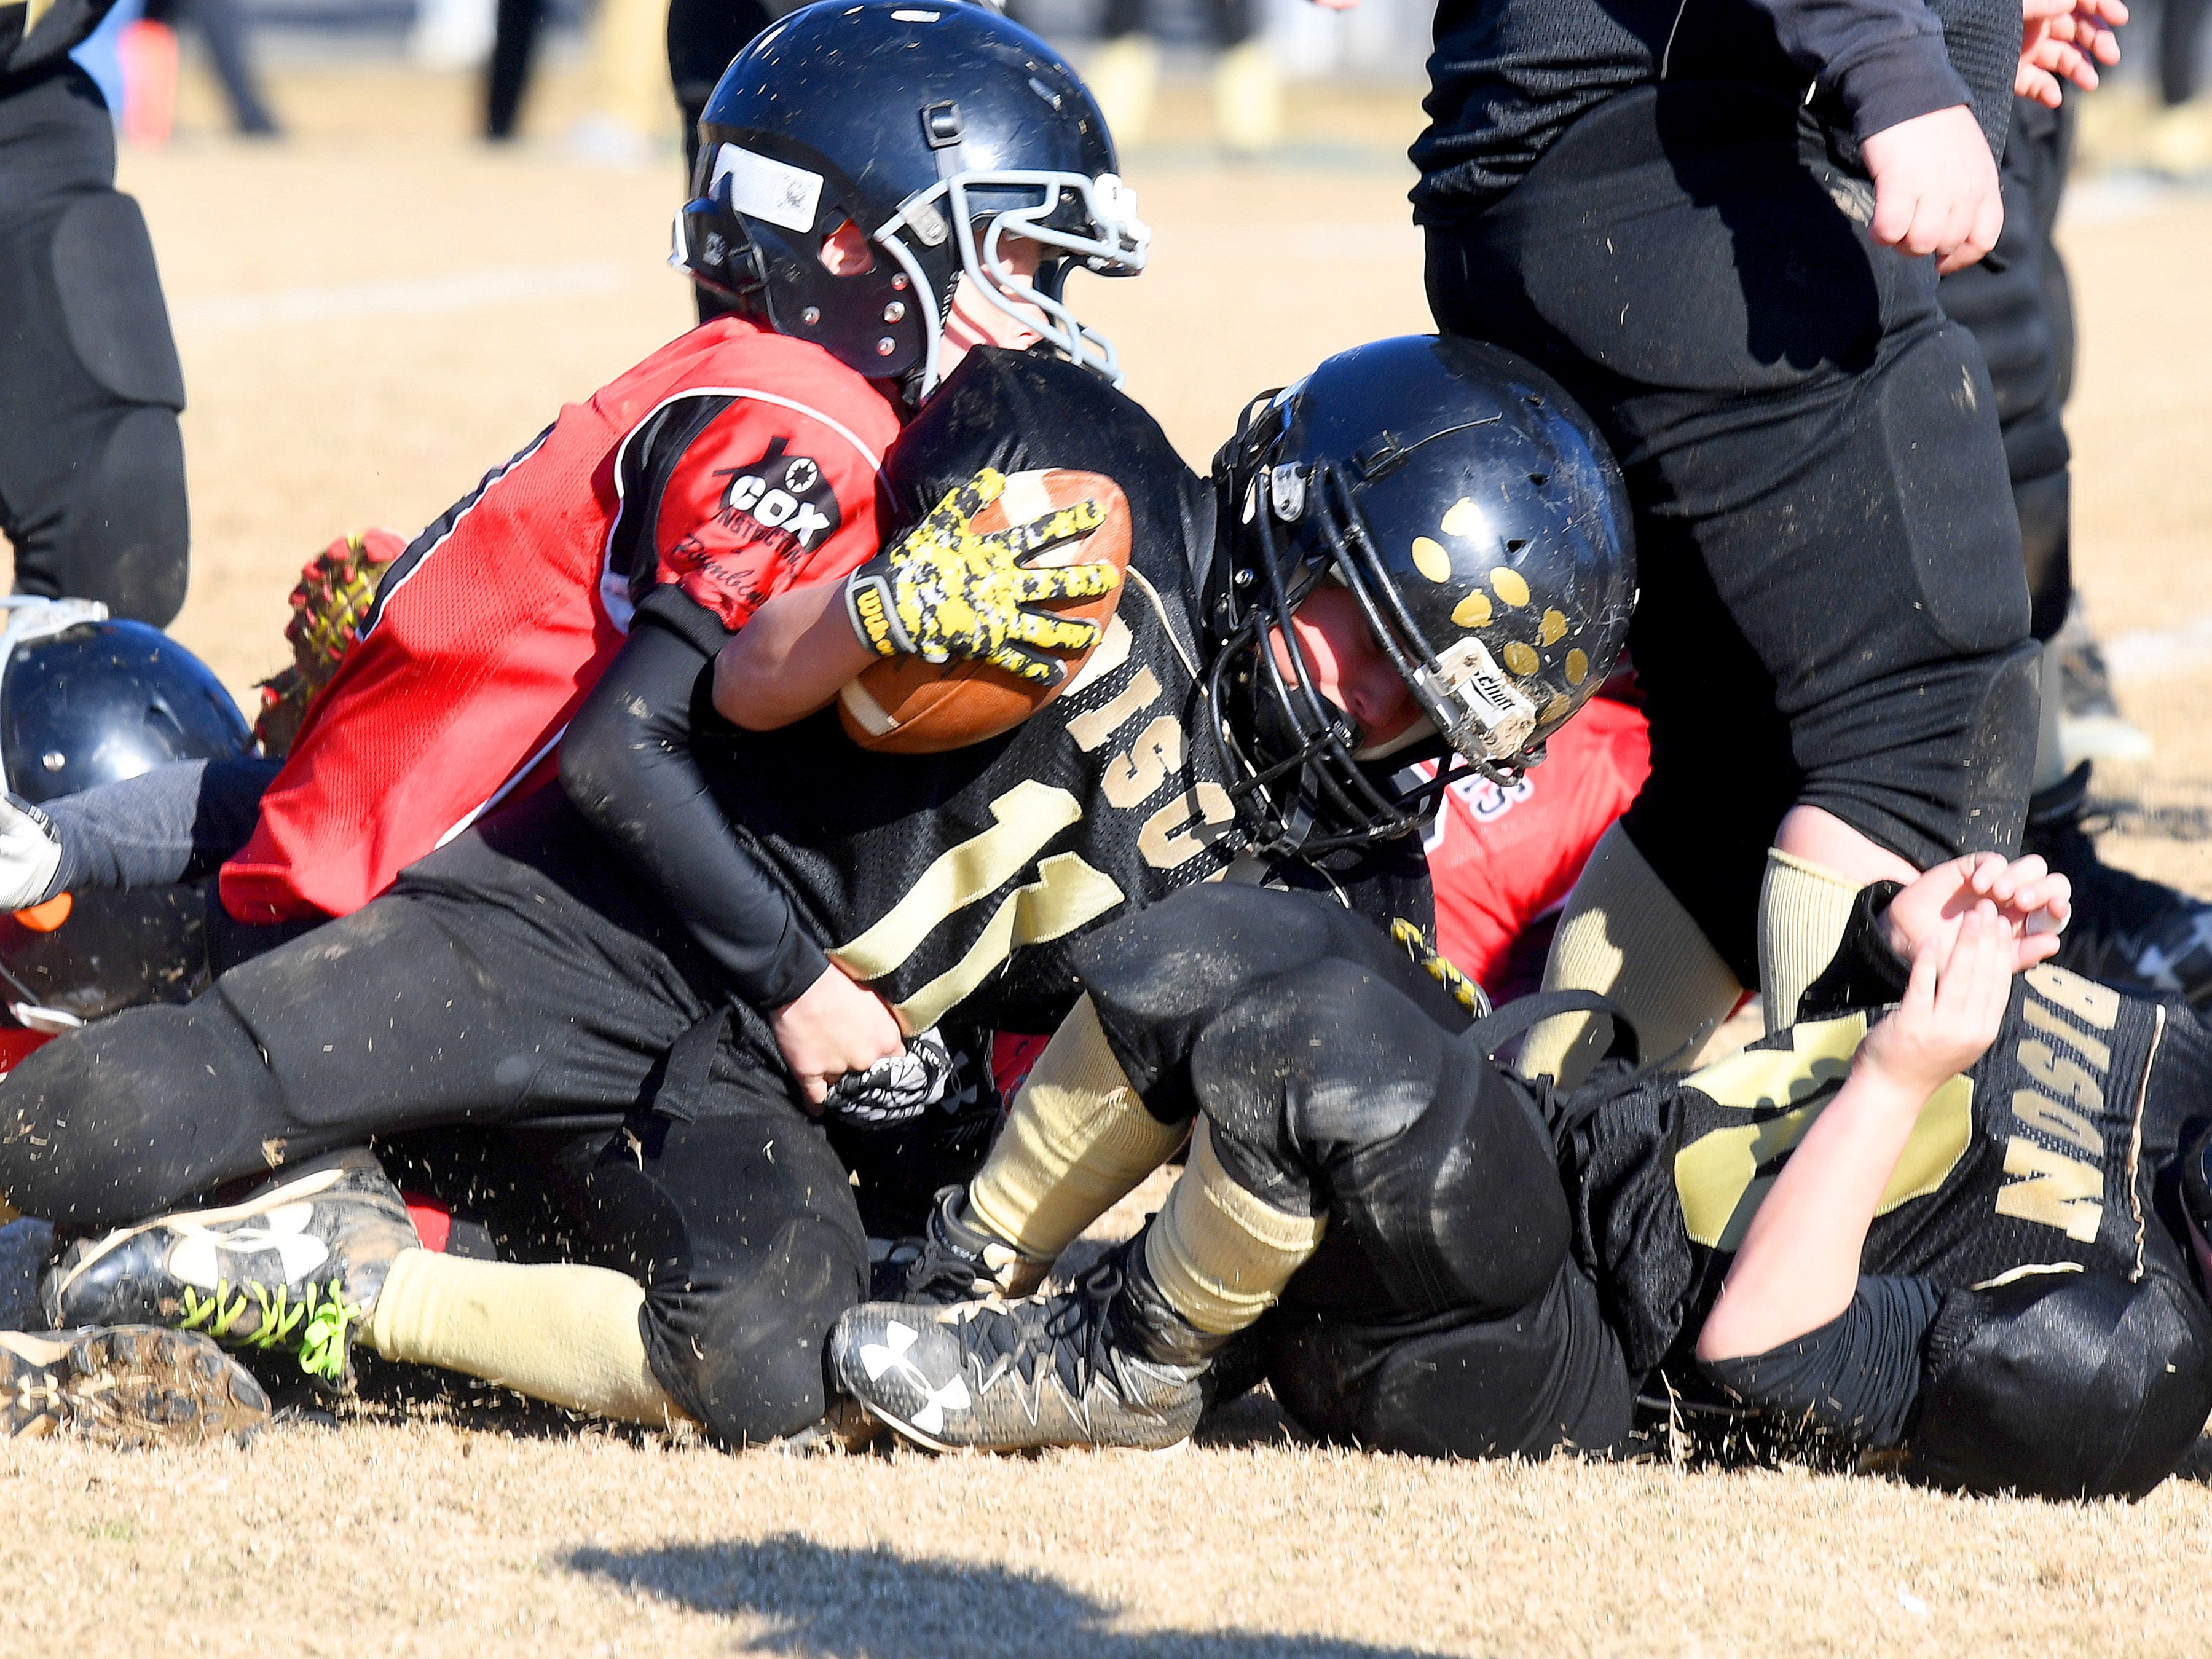 Buffalo Gap's Peyton Loan is tackled with the football during the Augusta County Quarterback Club Midget Super Bowl in Fishersville on Sunday, Nov. 11, 2018. Riverheads beat Buffalo Gap, 25-6.